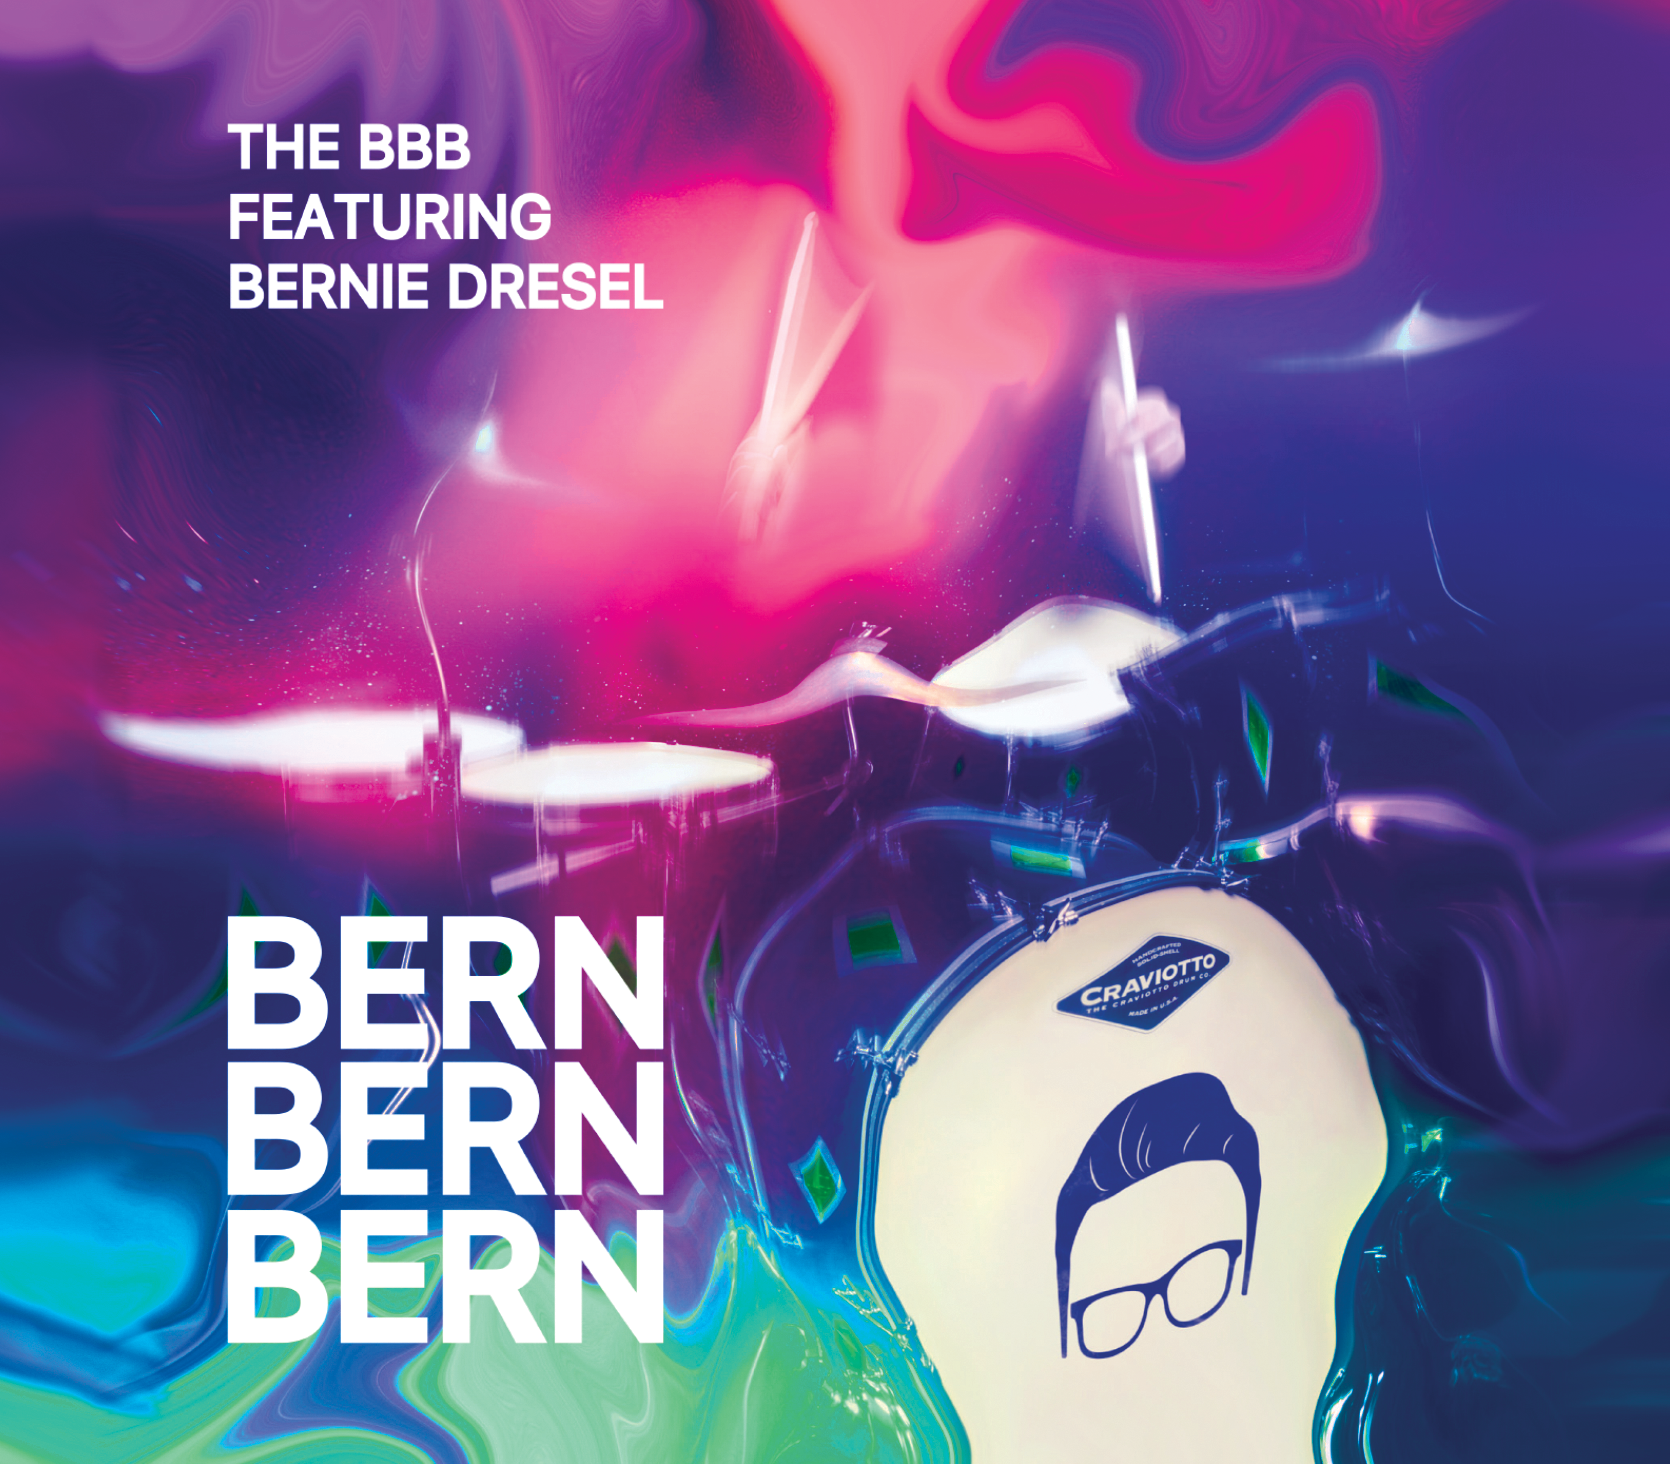 BERN BERN BERN - Established in 2014, The BBB Featuring Bernie Dresel plays monthly at packed jazz clubs and sold out concert venues in Los Angeles. The BBB provides potent testimony to the sheer exhilaration of big band jazz...a combination of intense swing and fiery soloing, as well as tight ensemble playing, powered by Bernie Dresel's extraordinary drumming talents.